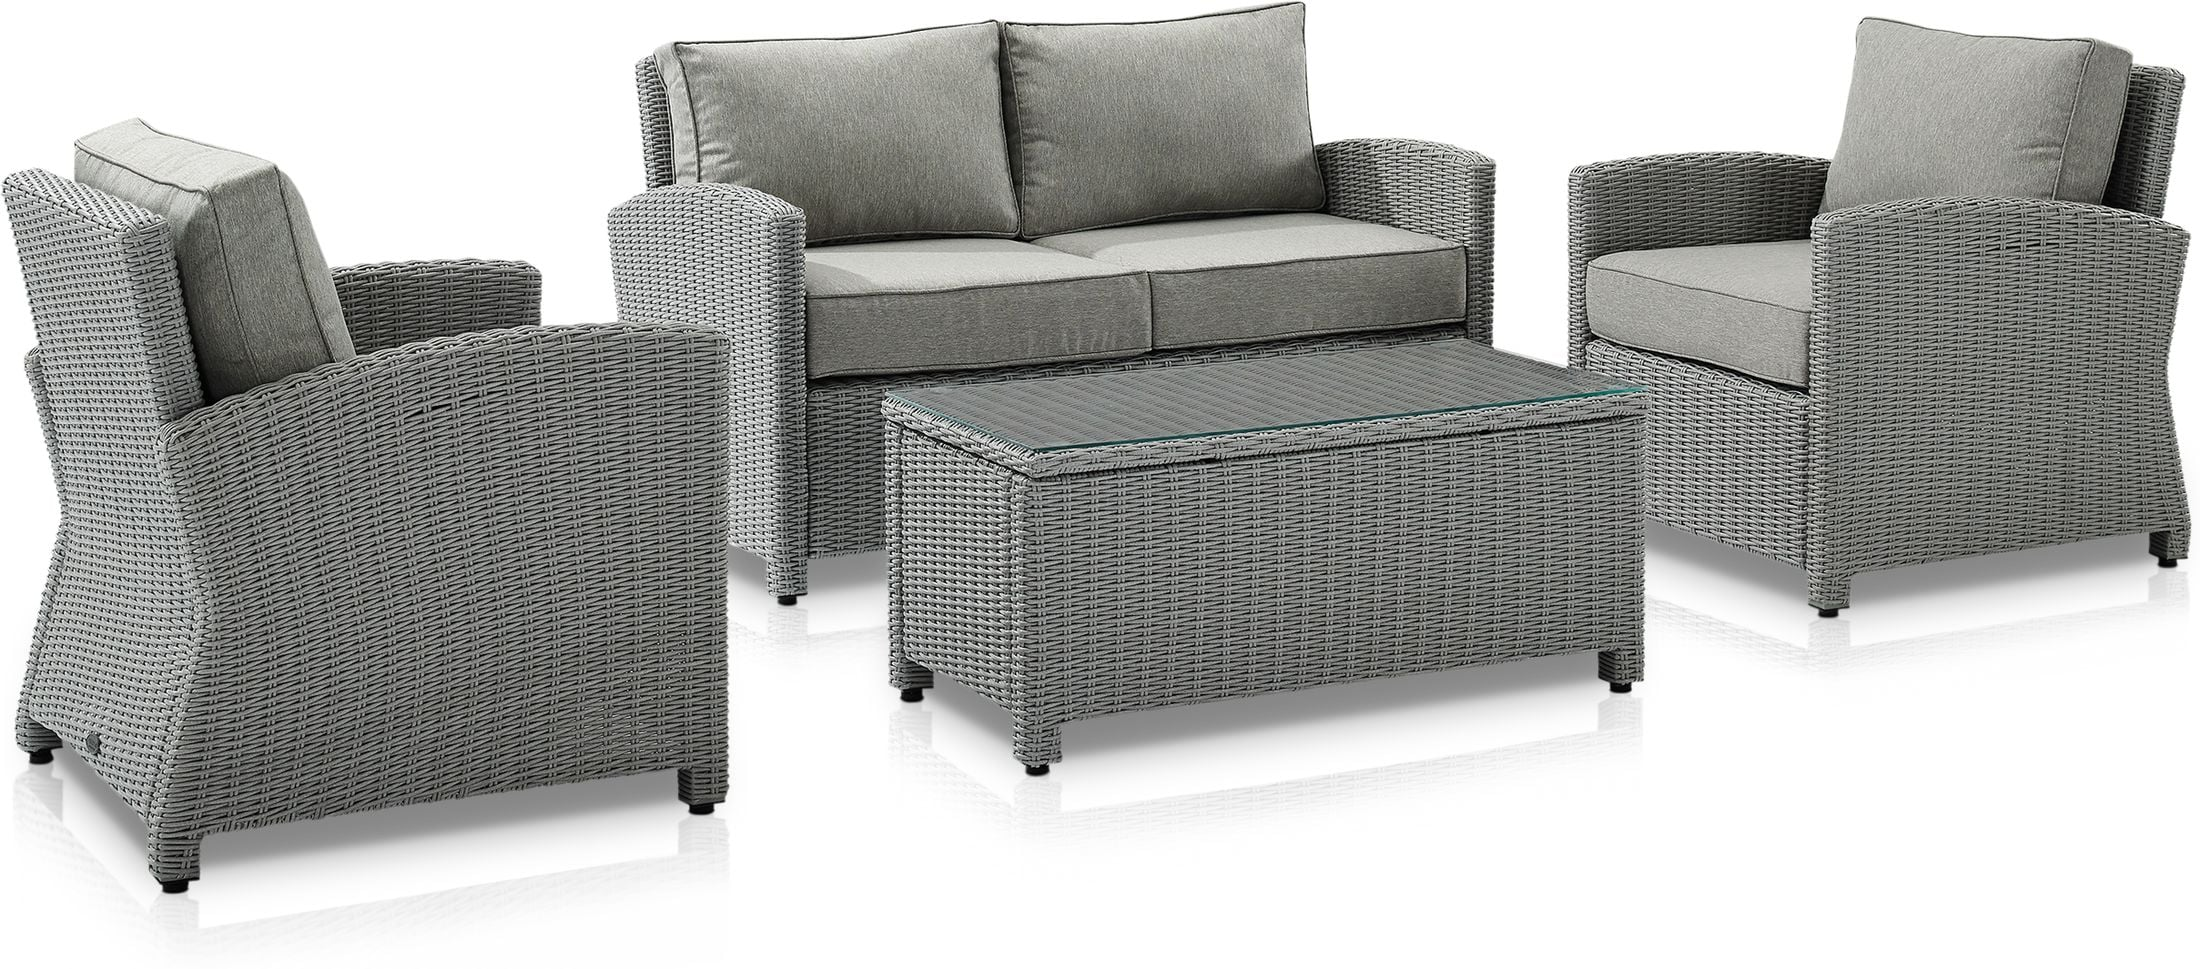 Outdoor Furniture - Destin Outdoor Loveseat, 2 Chairs and Coffee Table Set